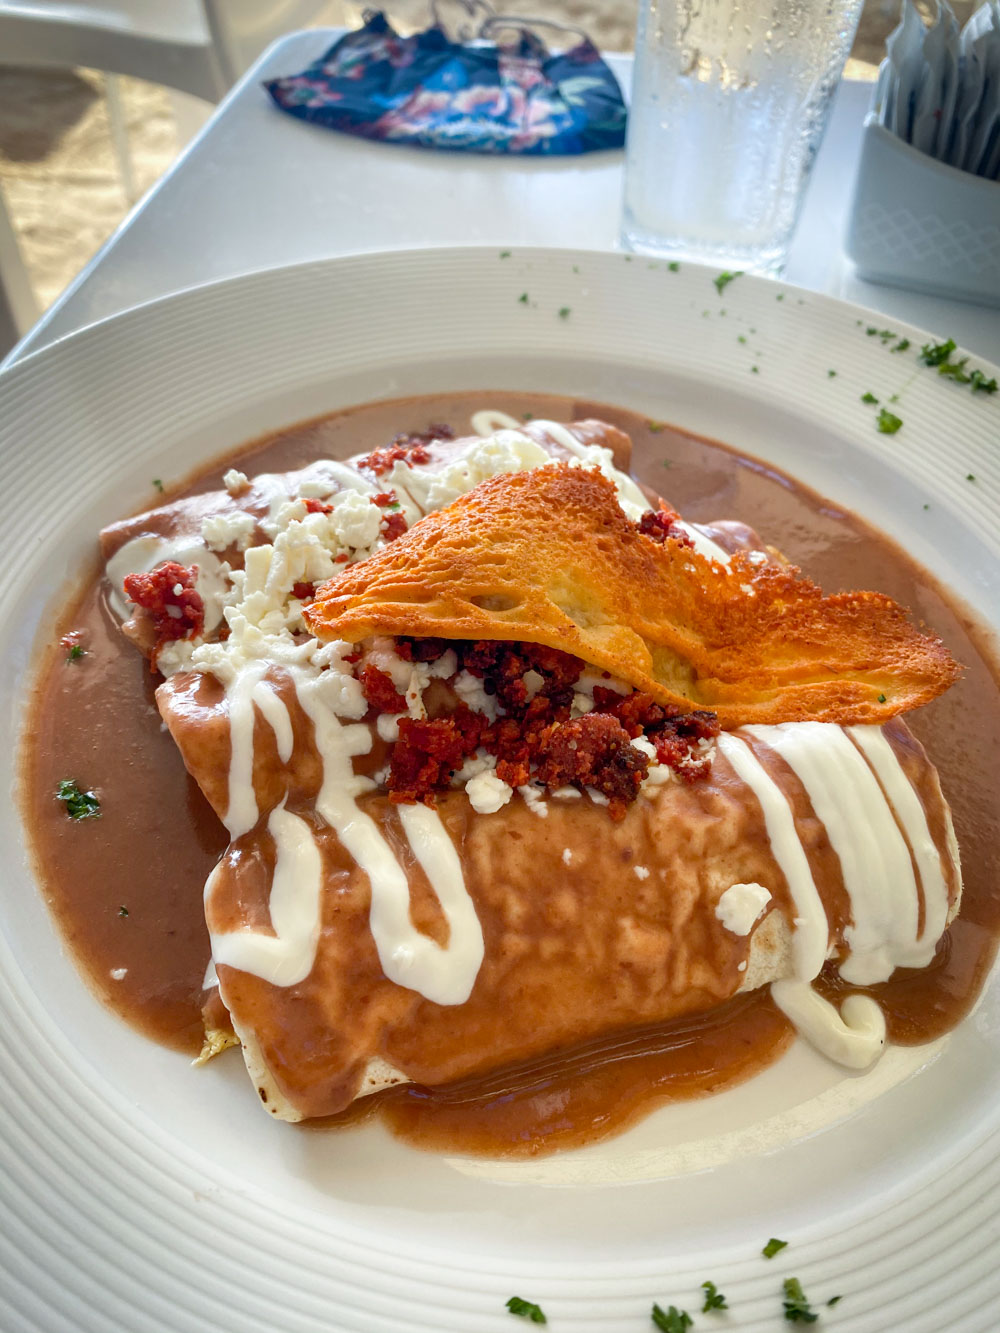 Breakfast Enchiladas smothered in creamy bean sauce and topped with crema and bacon.